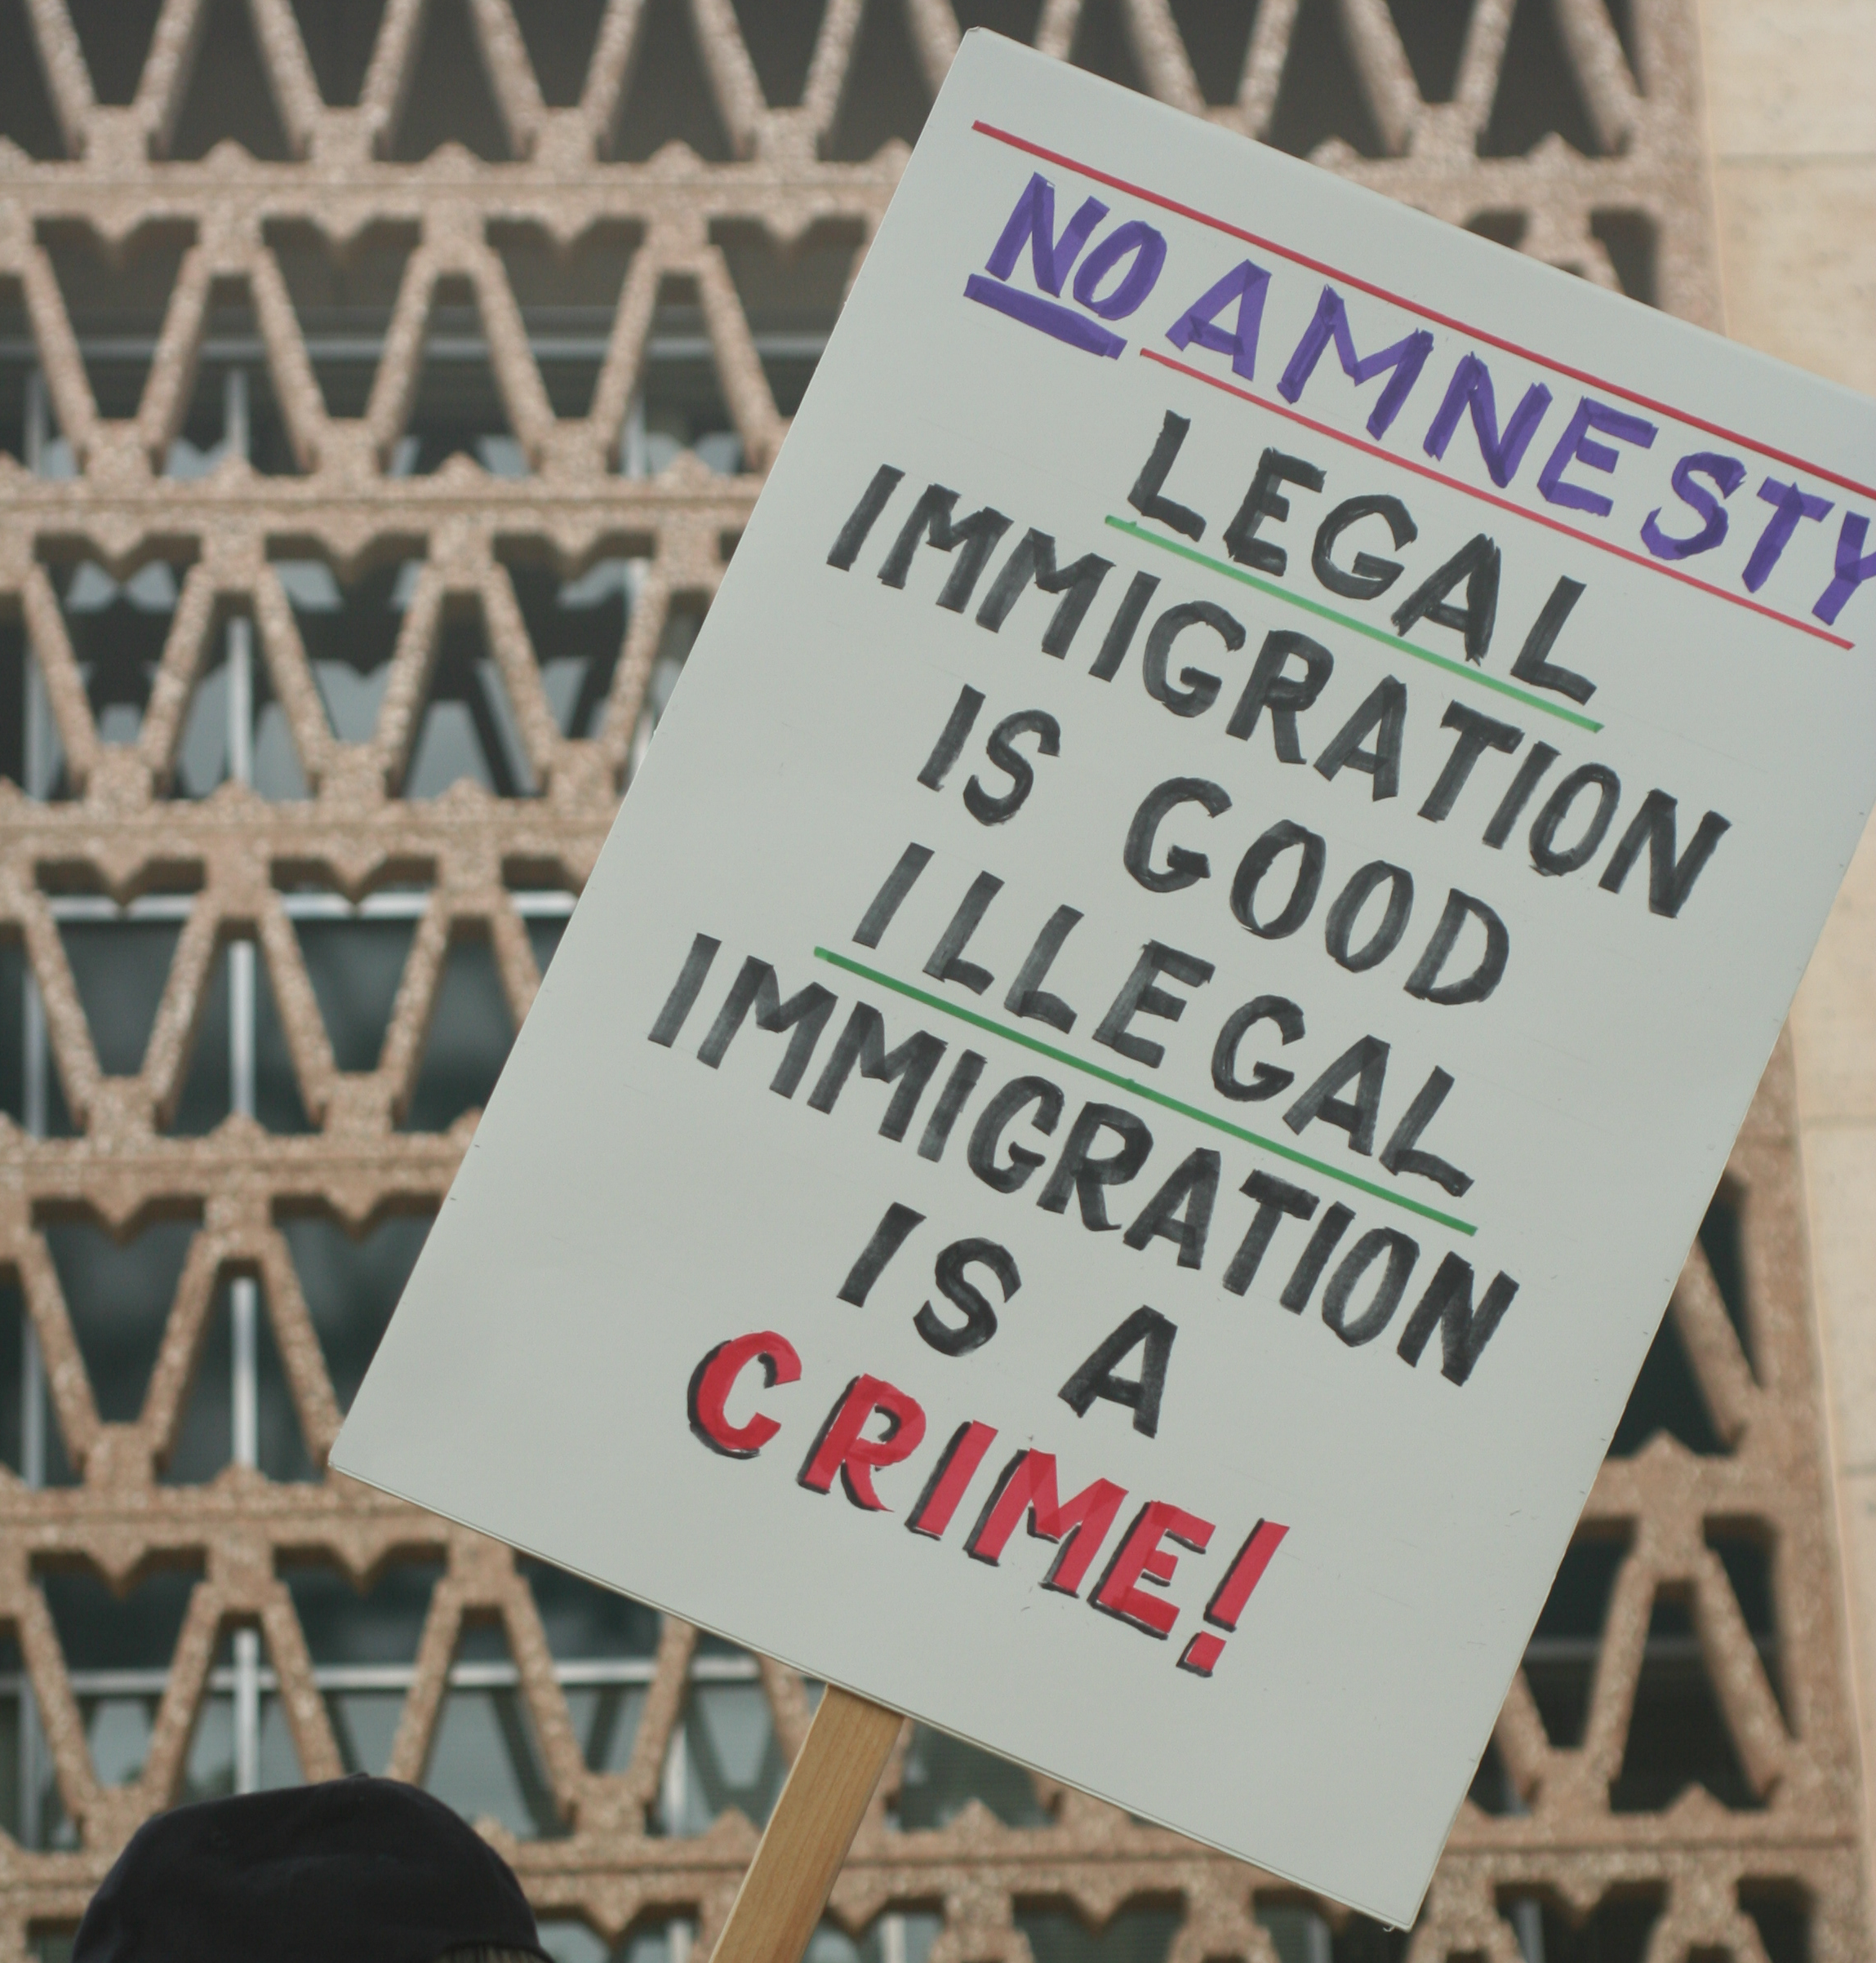 Recent court rulings block deferred action programs and raise recent court rulings block deferred action programs and raise questions for accessing birthright citizenship yelopaper Choice Image